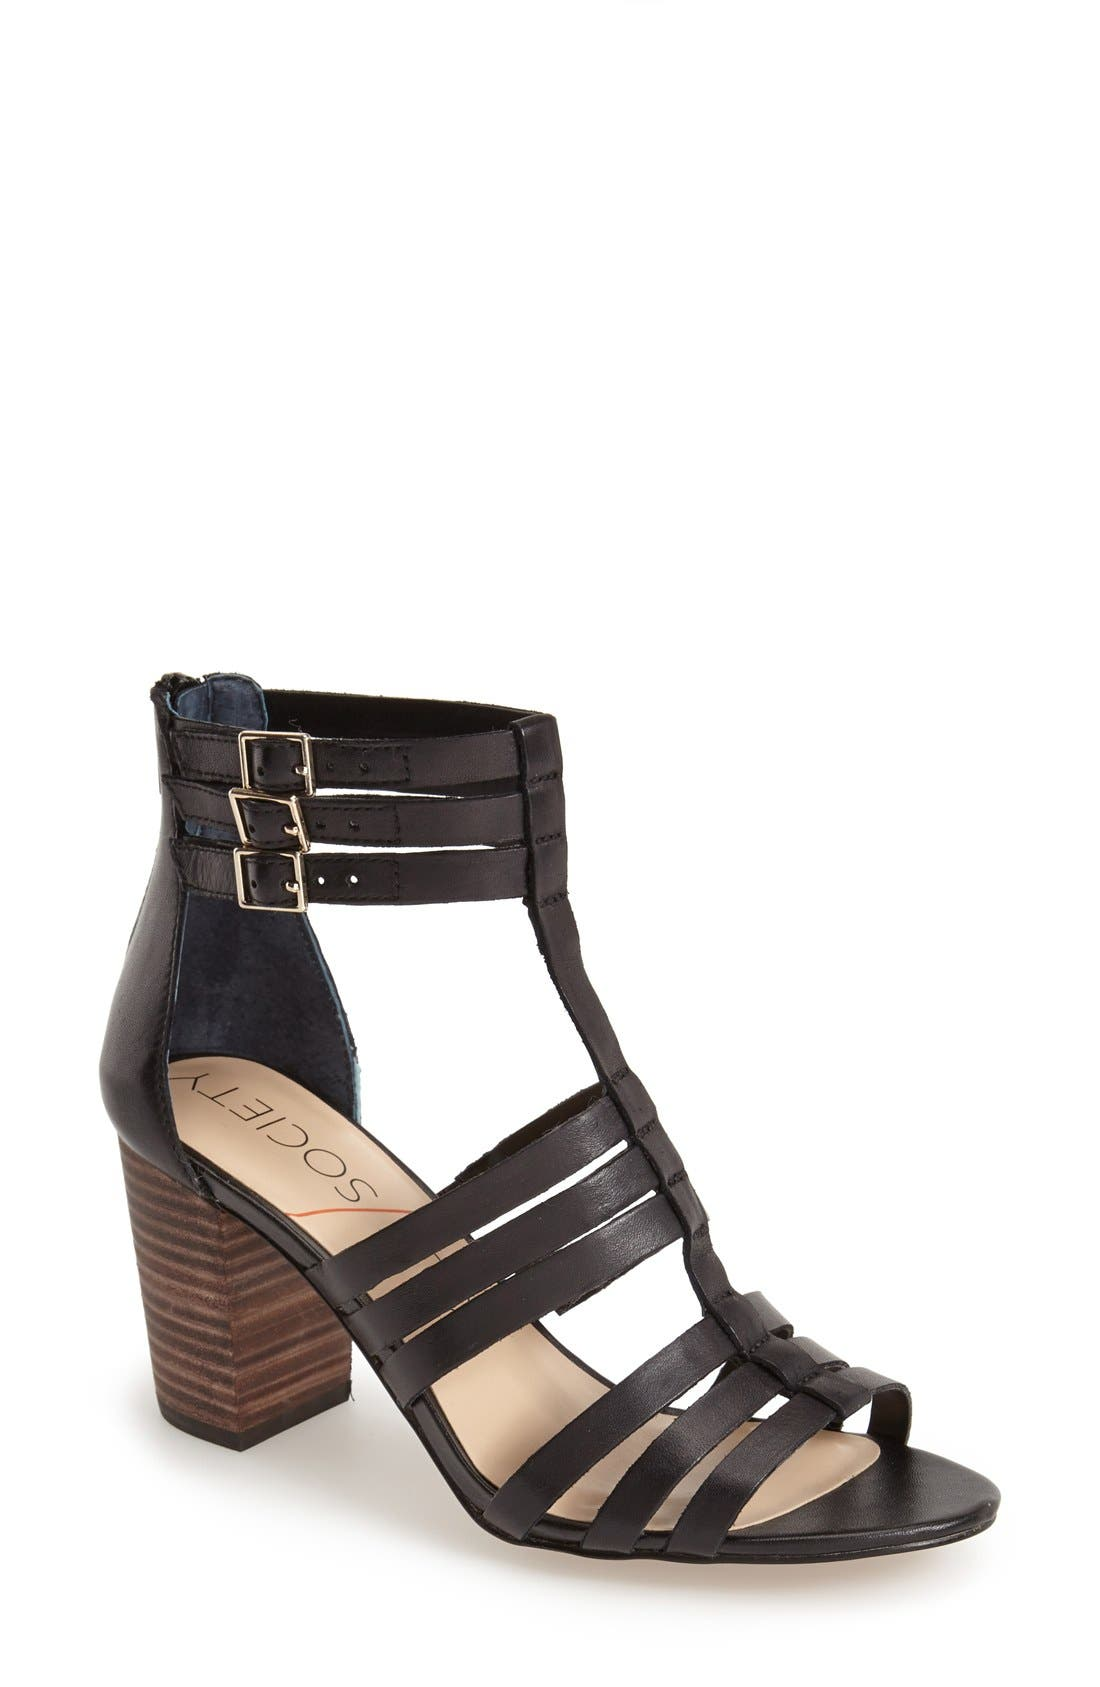 'Elise' Gladiator Sandal,                         Main,                         color, 001